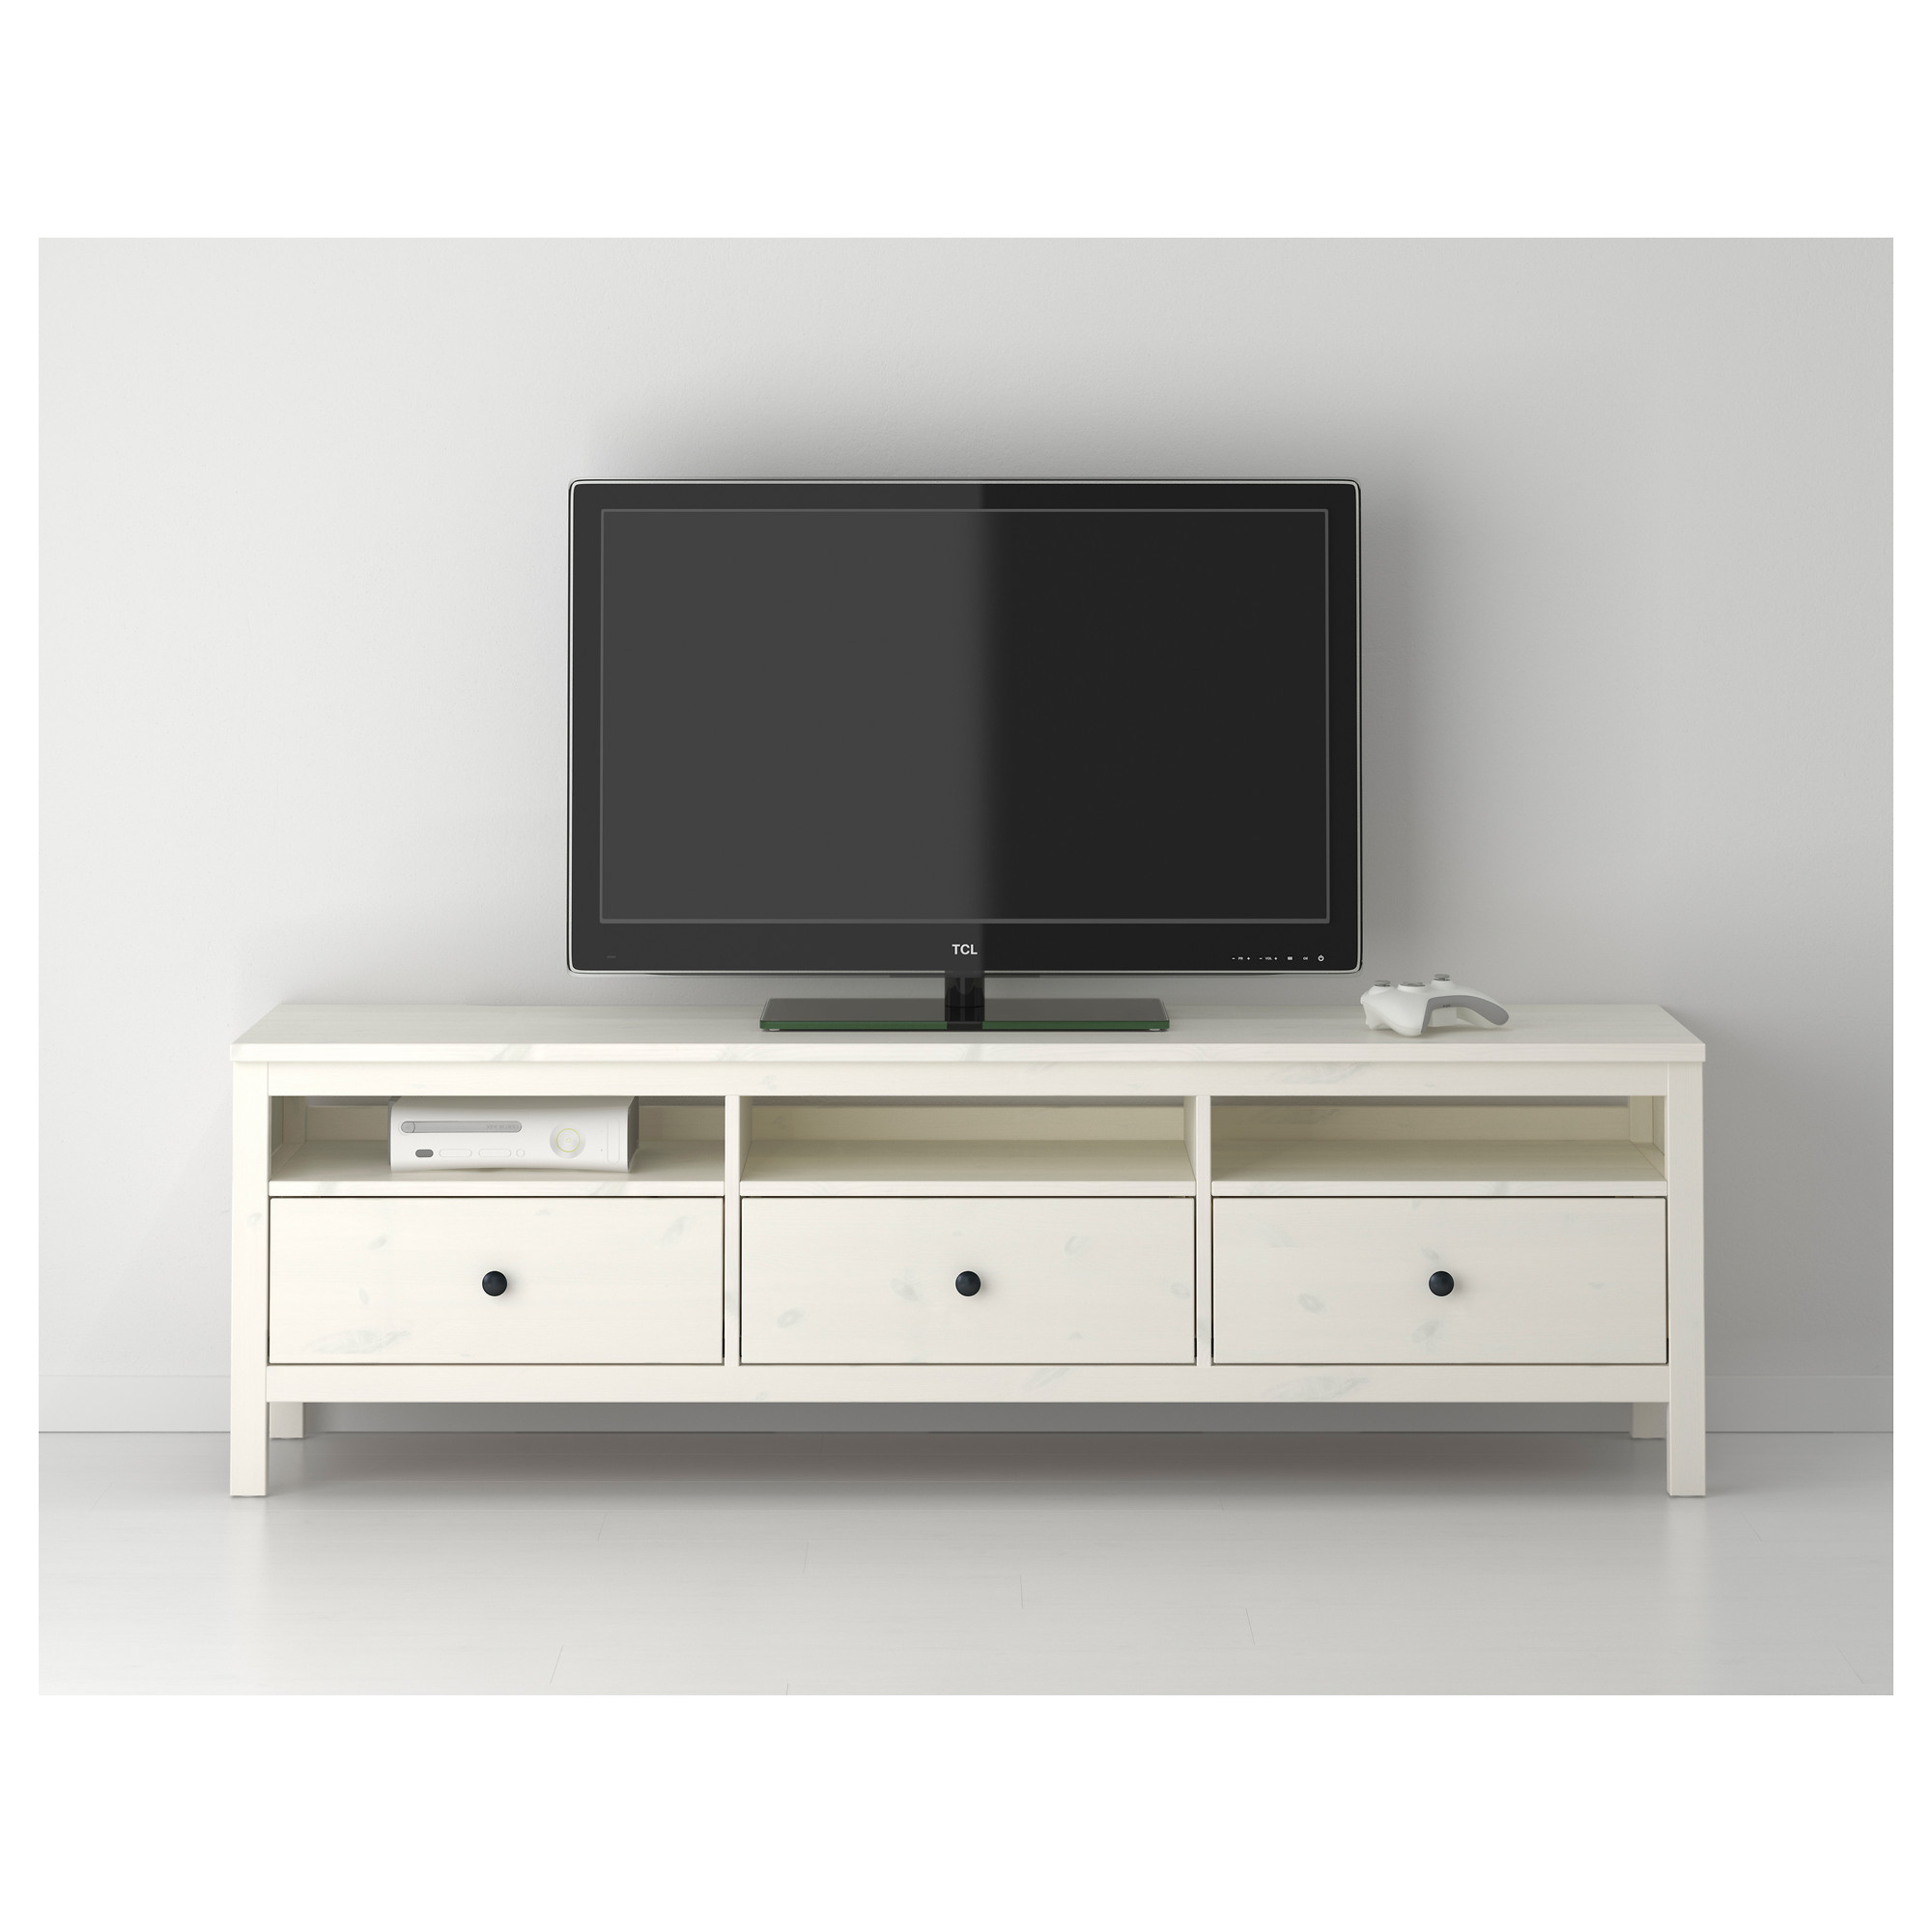 tv stand ikea hemnes. Black Bedroom Furniture Sets. Home Design Ideas